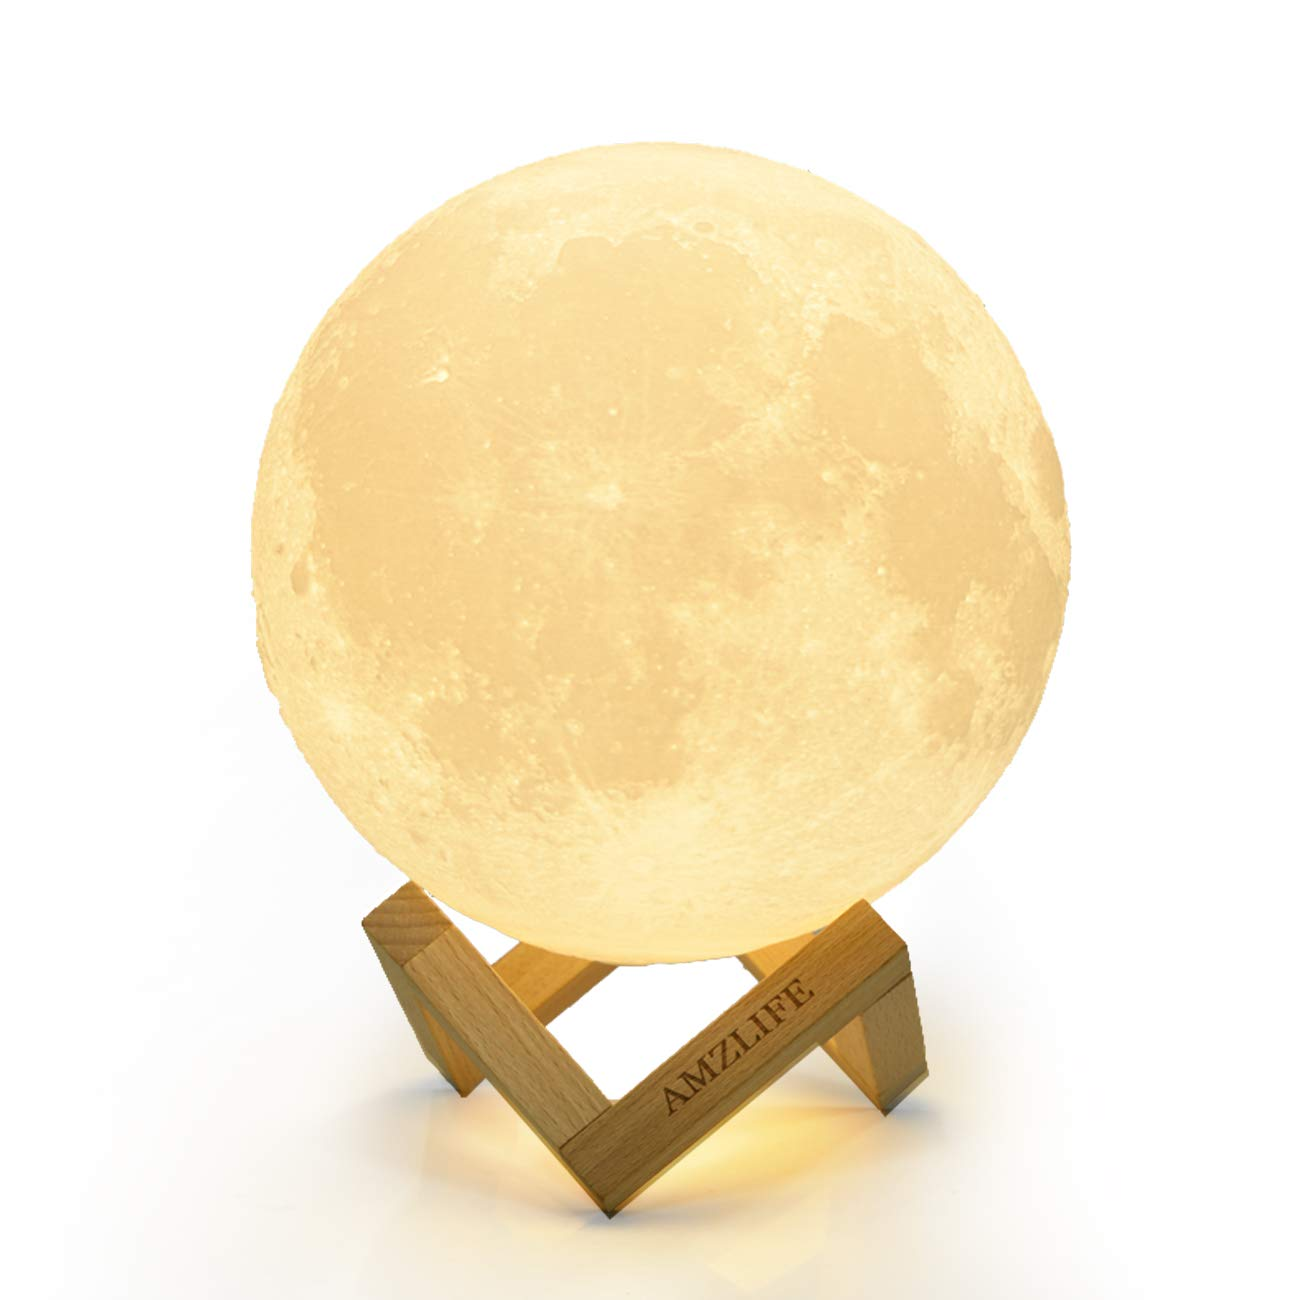 AMZLIFE 3D Printing Moon Lamp, 2 Colors Select Dimmable with Touch Sensor Switch, USB Rechargeable Decorative Night Light 4.7 inch